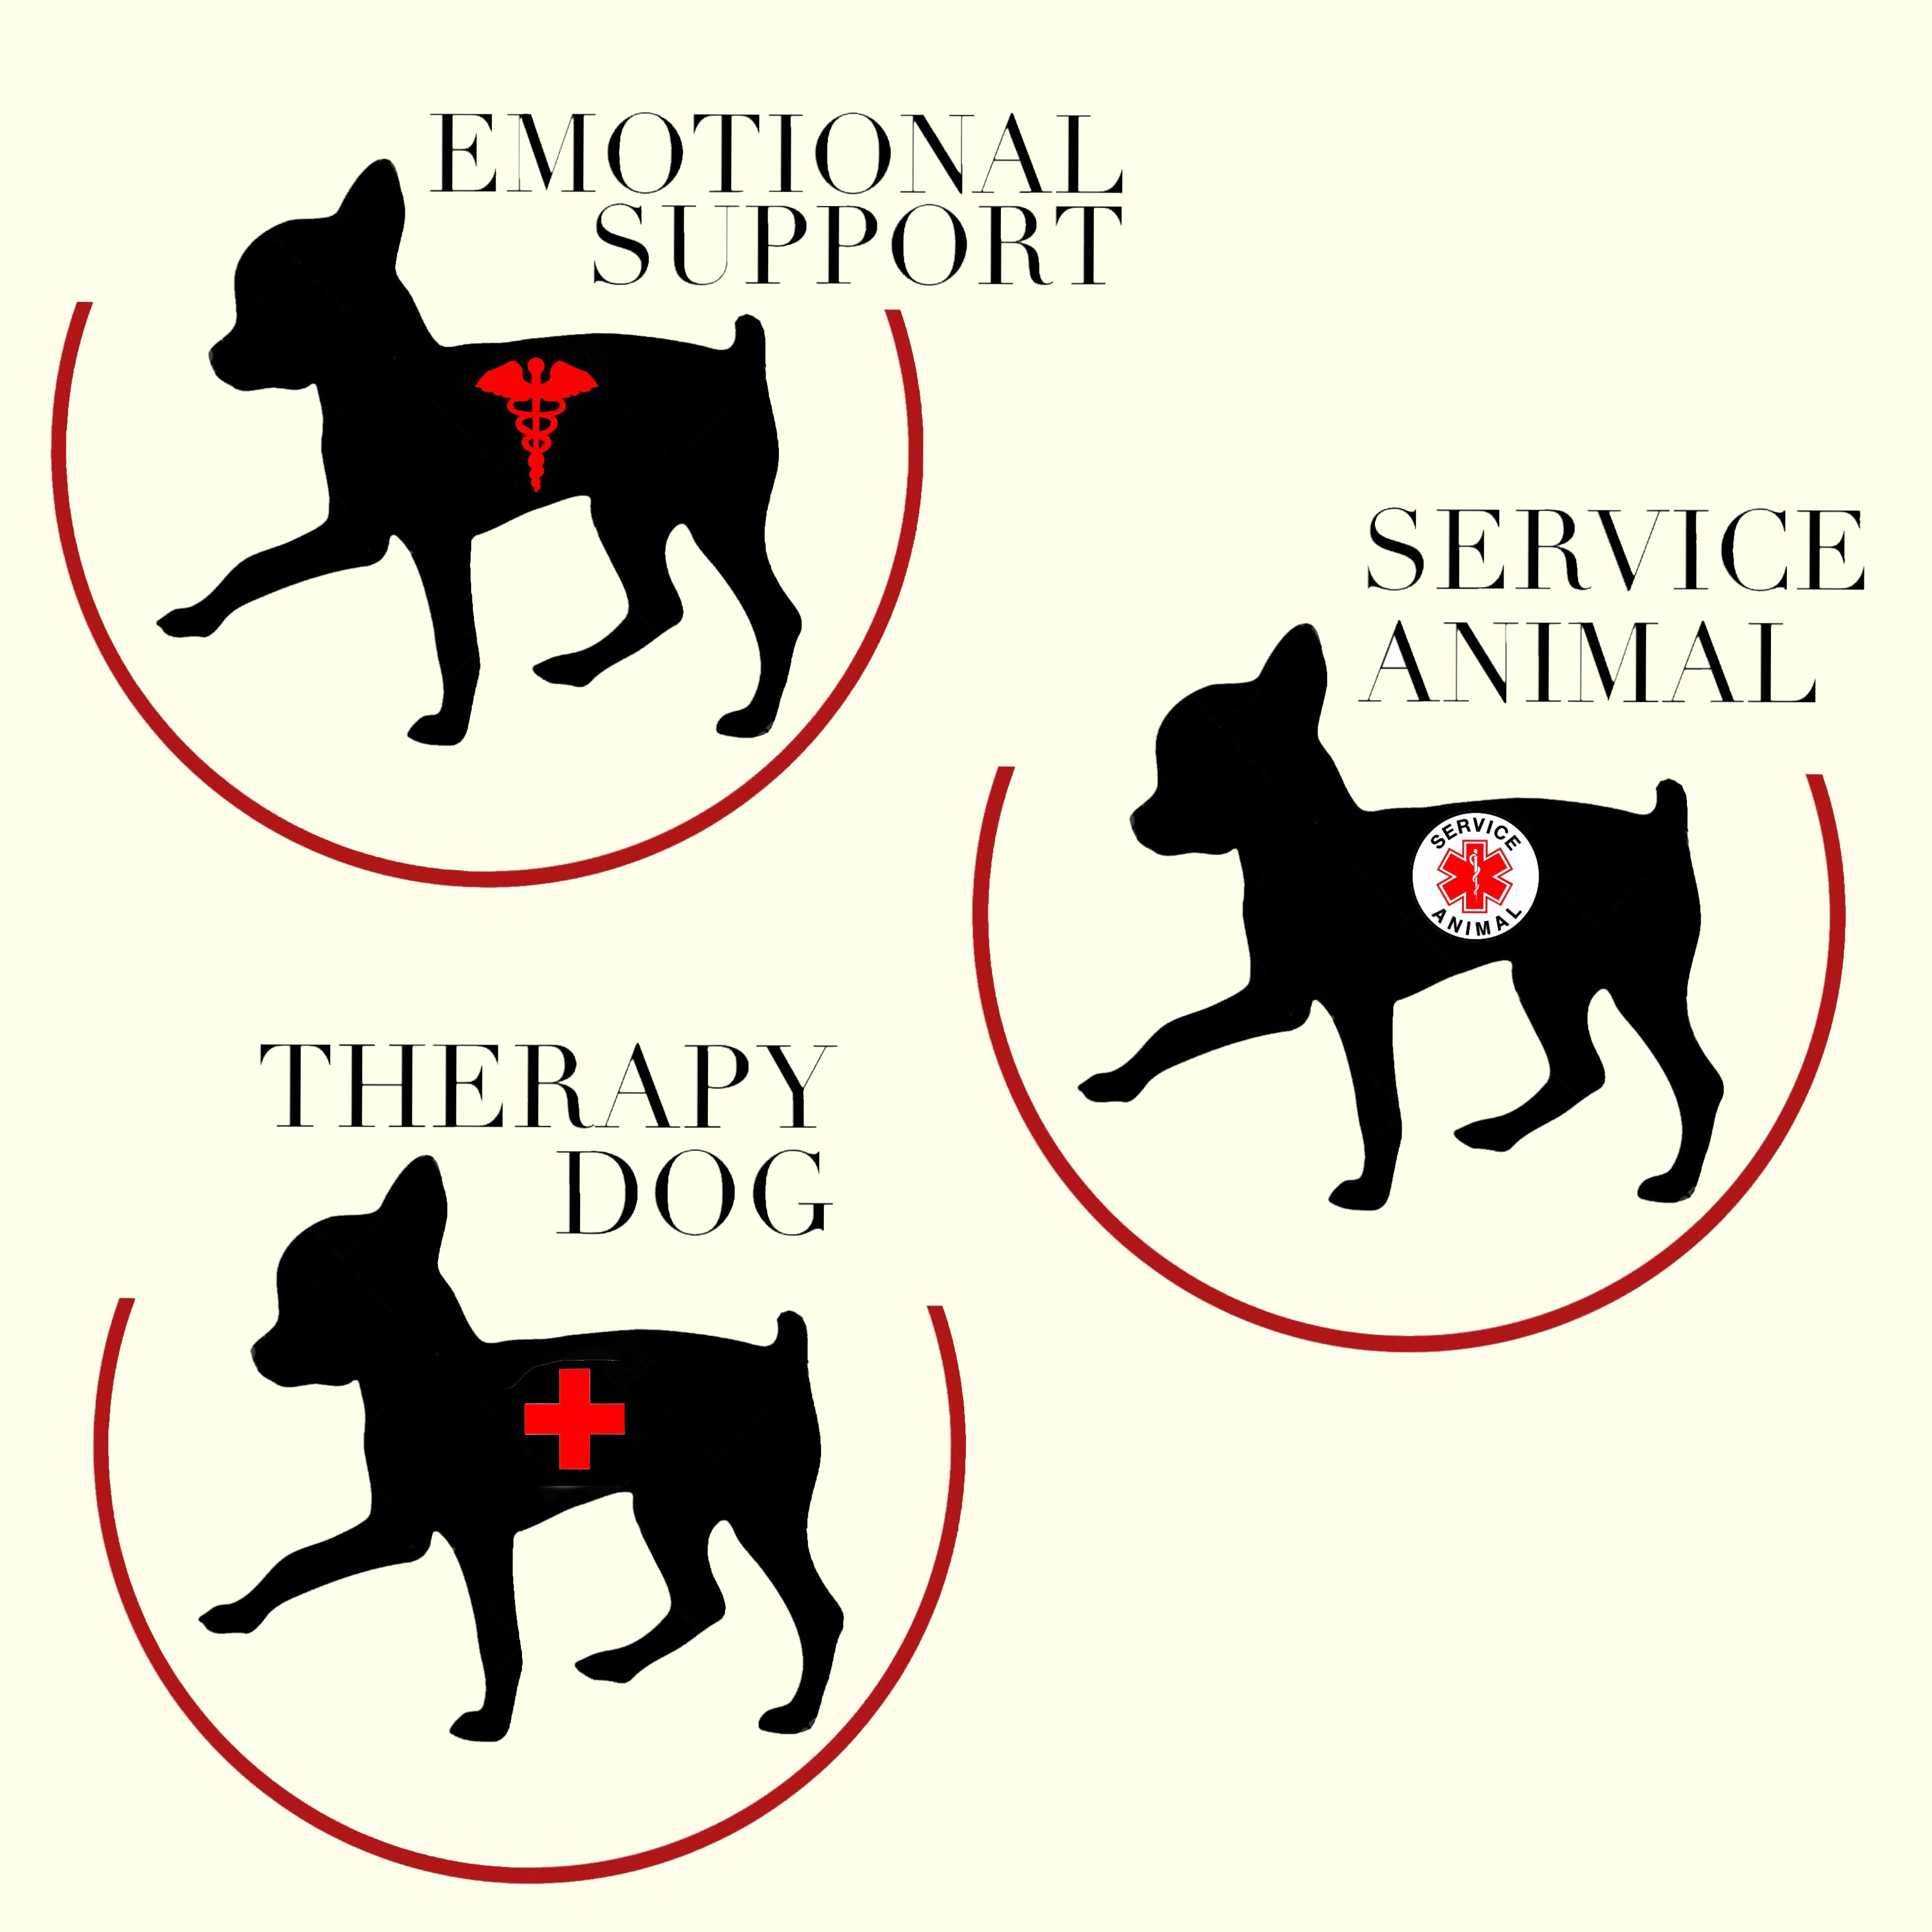 Image of: Therapy Dog Service Dogs Emotional Support Animals Therapy Dogswhats The Difference Miso Pup Quora Service Dogs Emotional Support Animals Therapy Dogswhats The